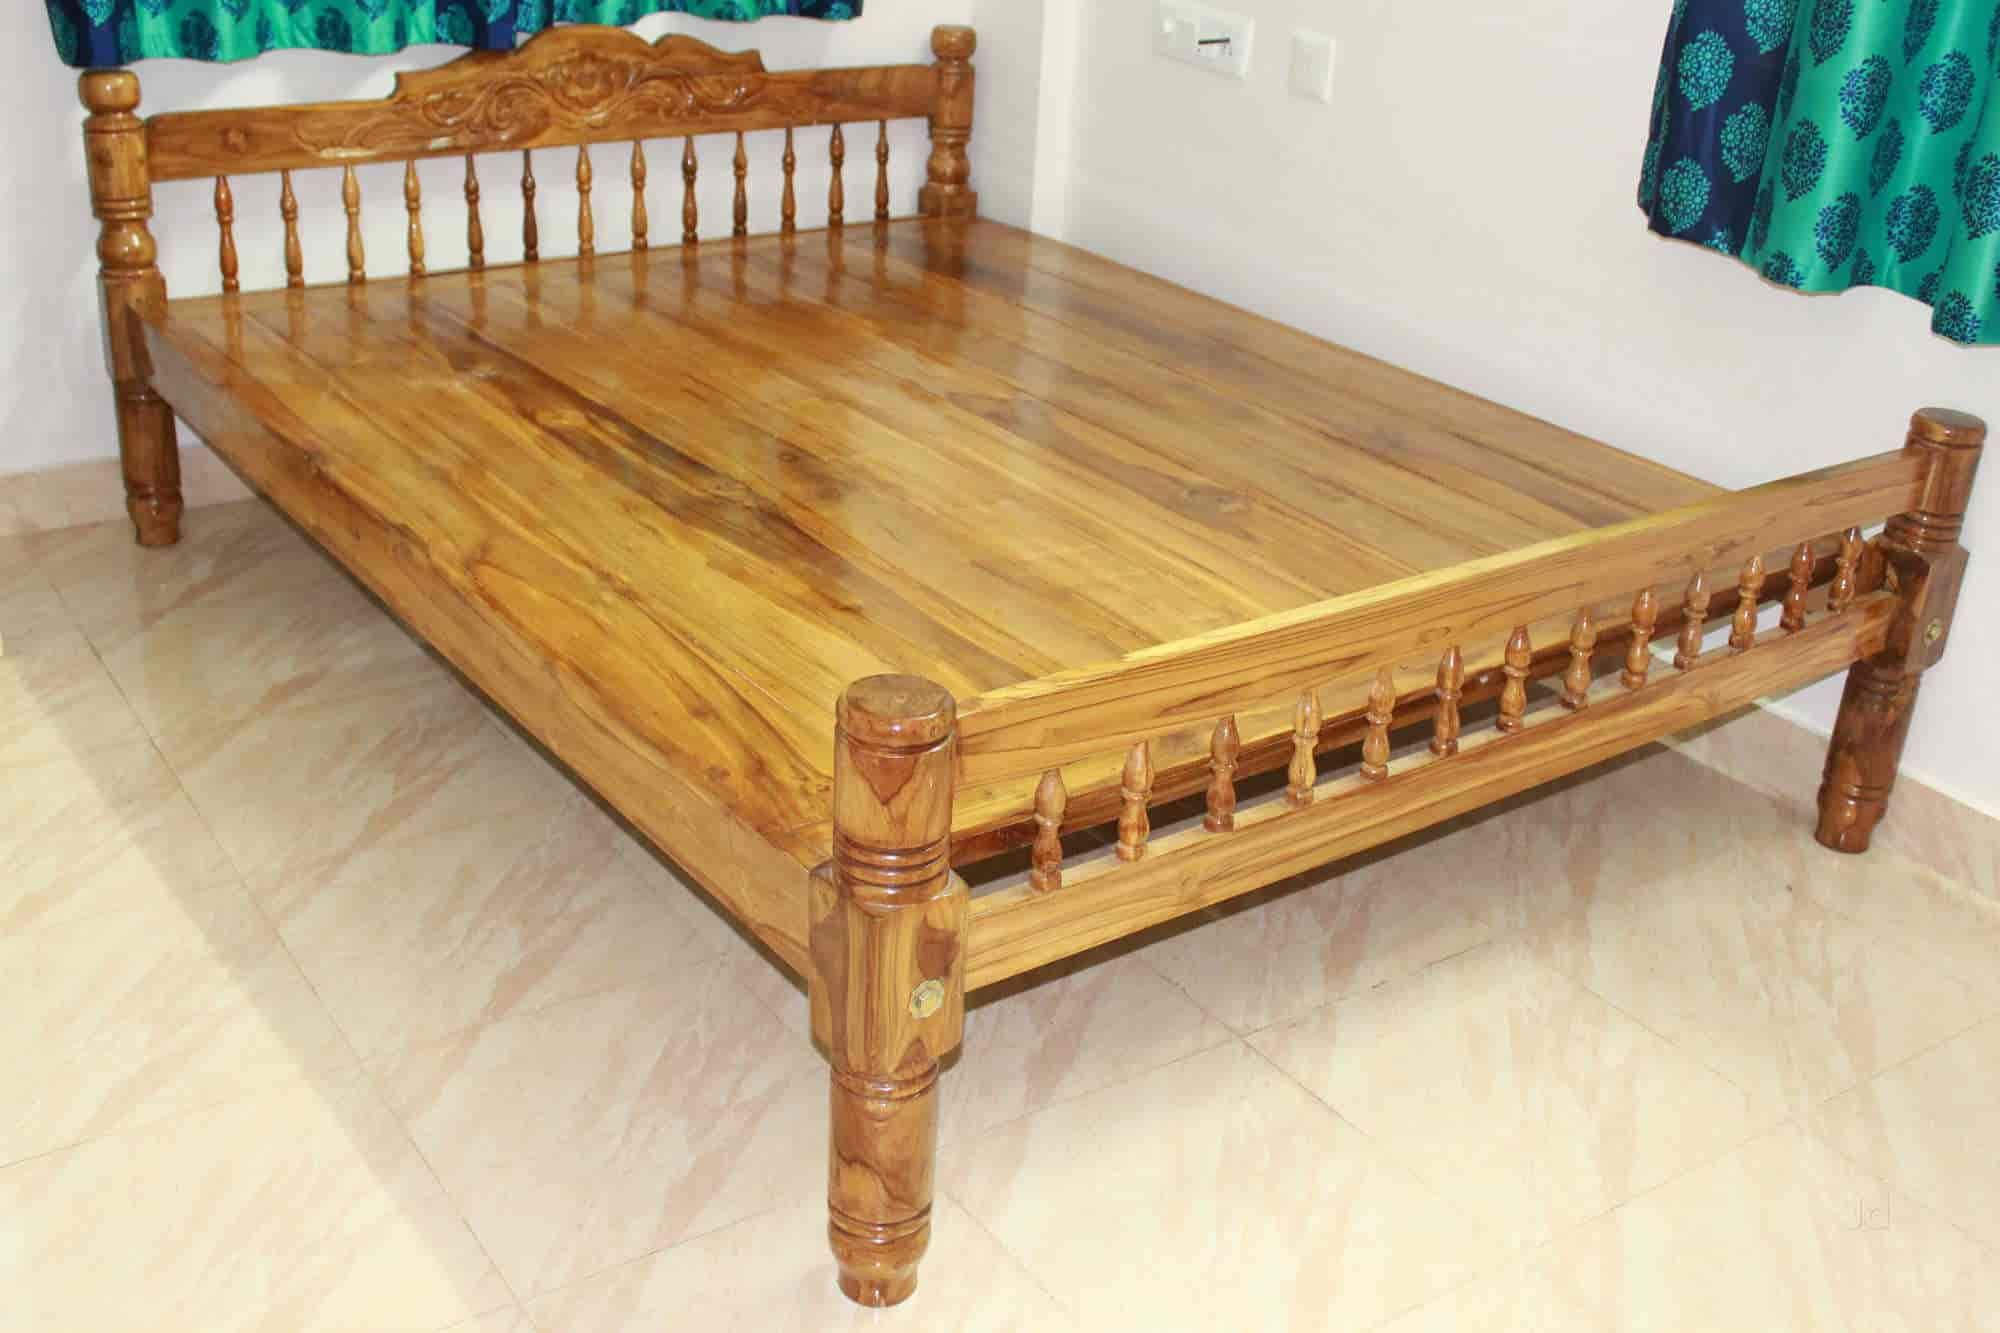 Nandanam Teak Furnitures Whitefield Teak Wood Furniture Dealers